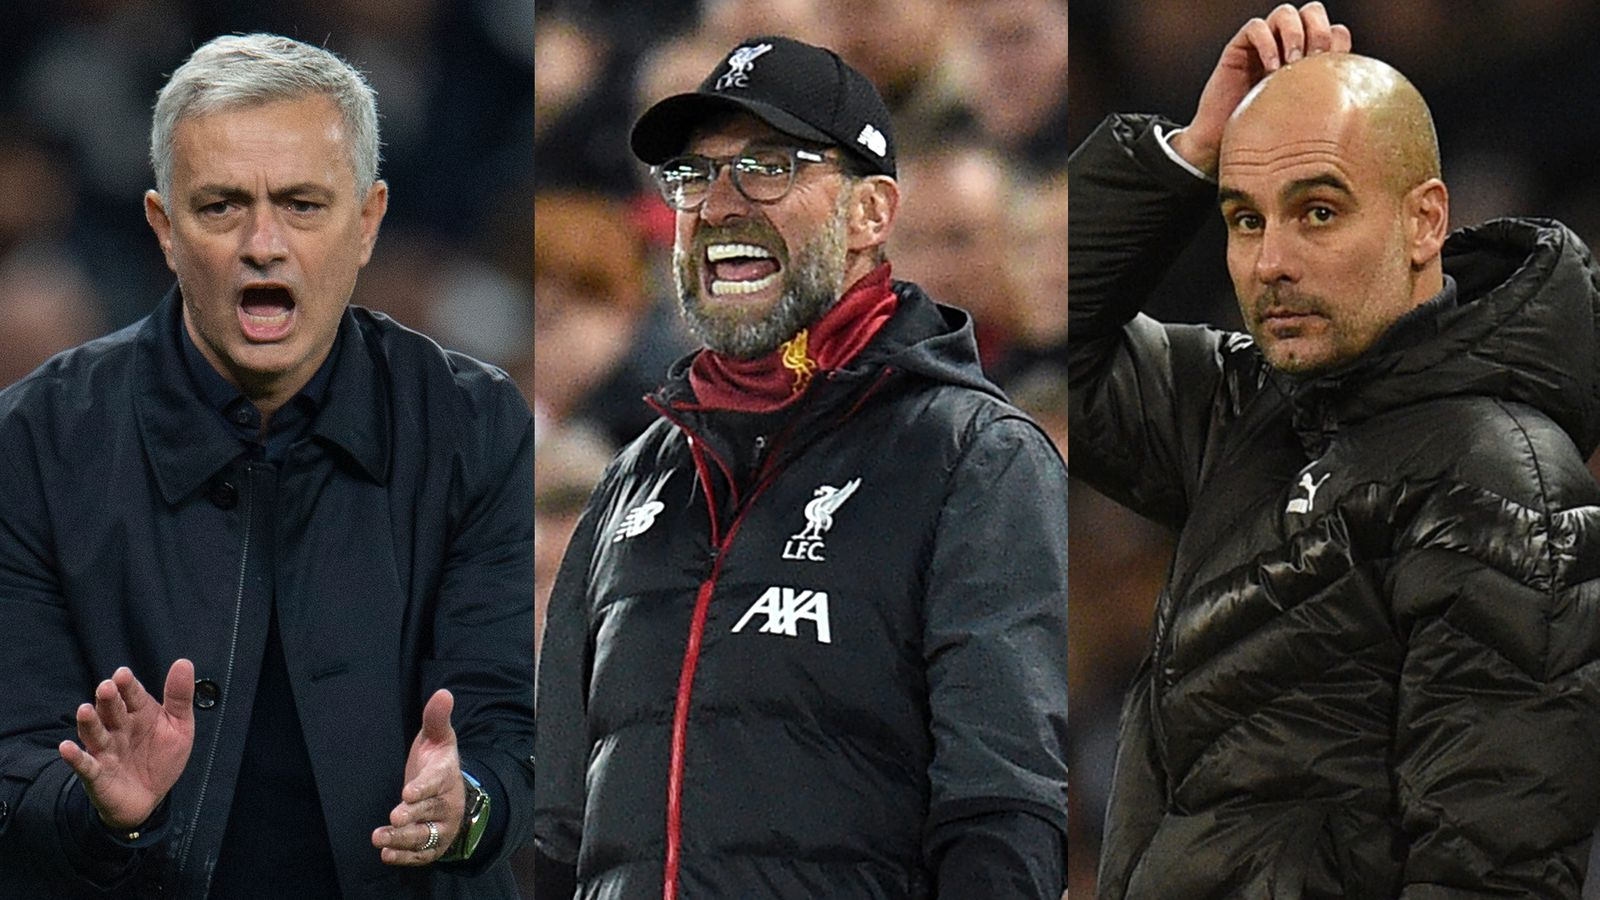 https://celebritycontent.com/2020/07/15/jurgen-klopp-overturning-manchester-citys-european-ban-not-a-good-day-for-football-football-news-sky-sports/